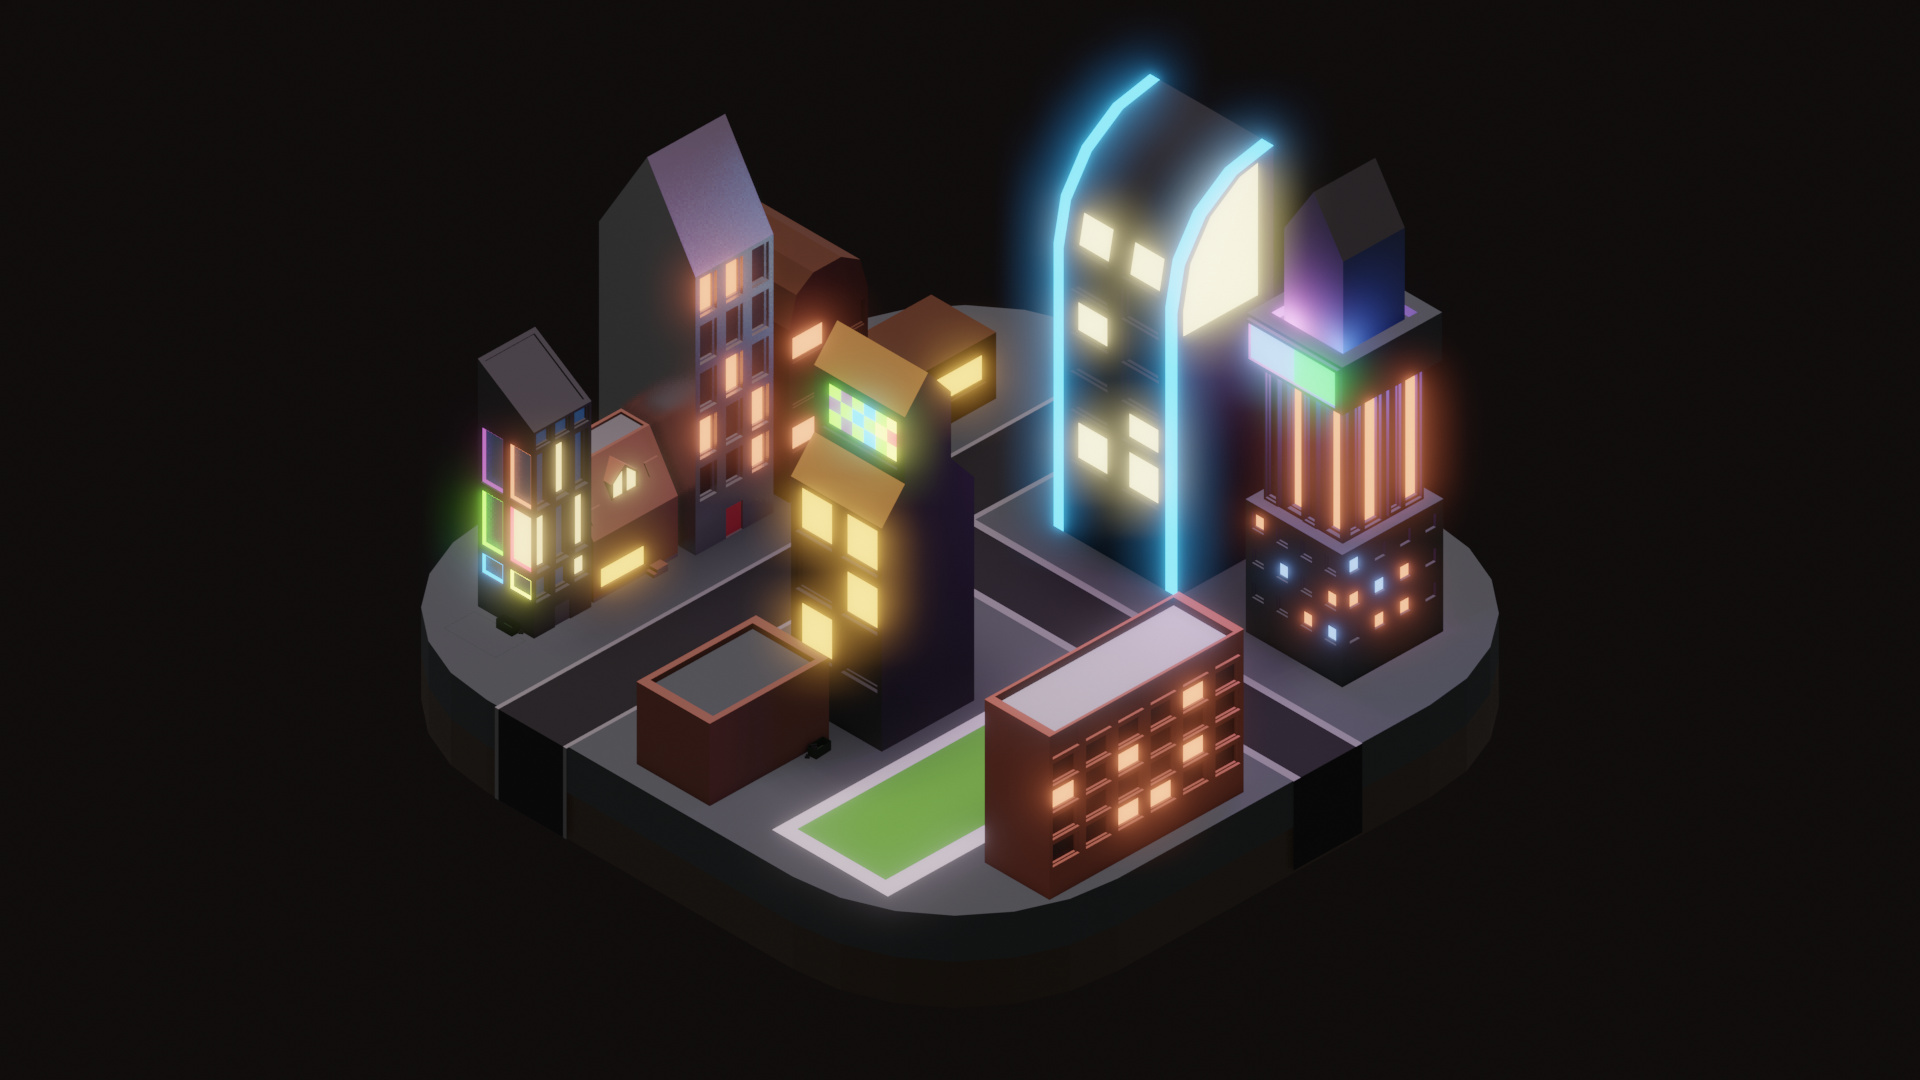 Low Poly City at Night - Finished Projects - Blender Artists Community